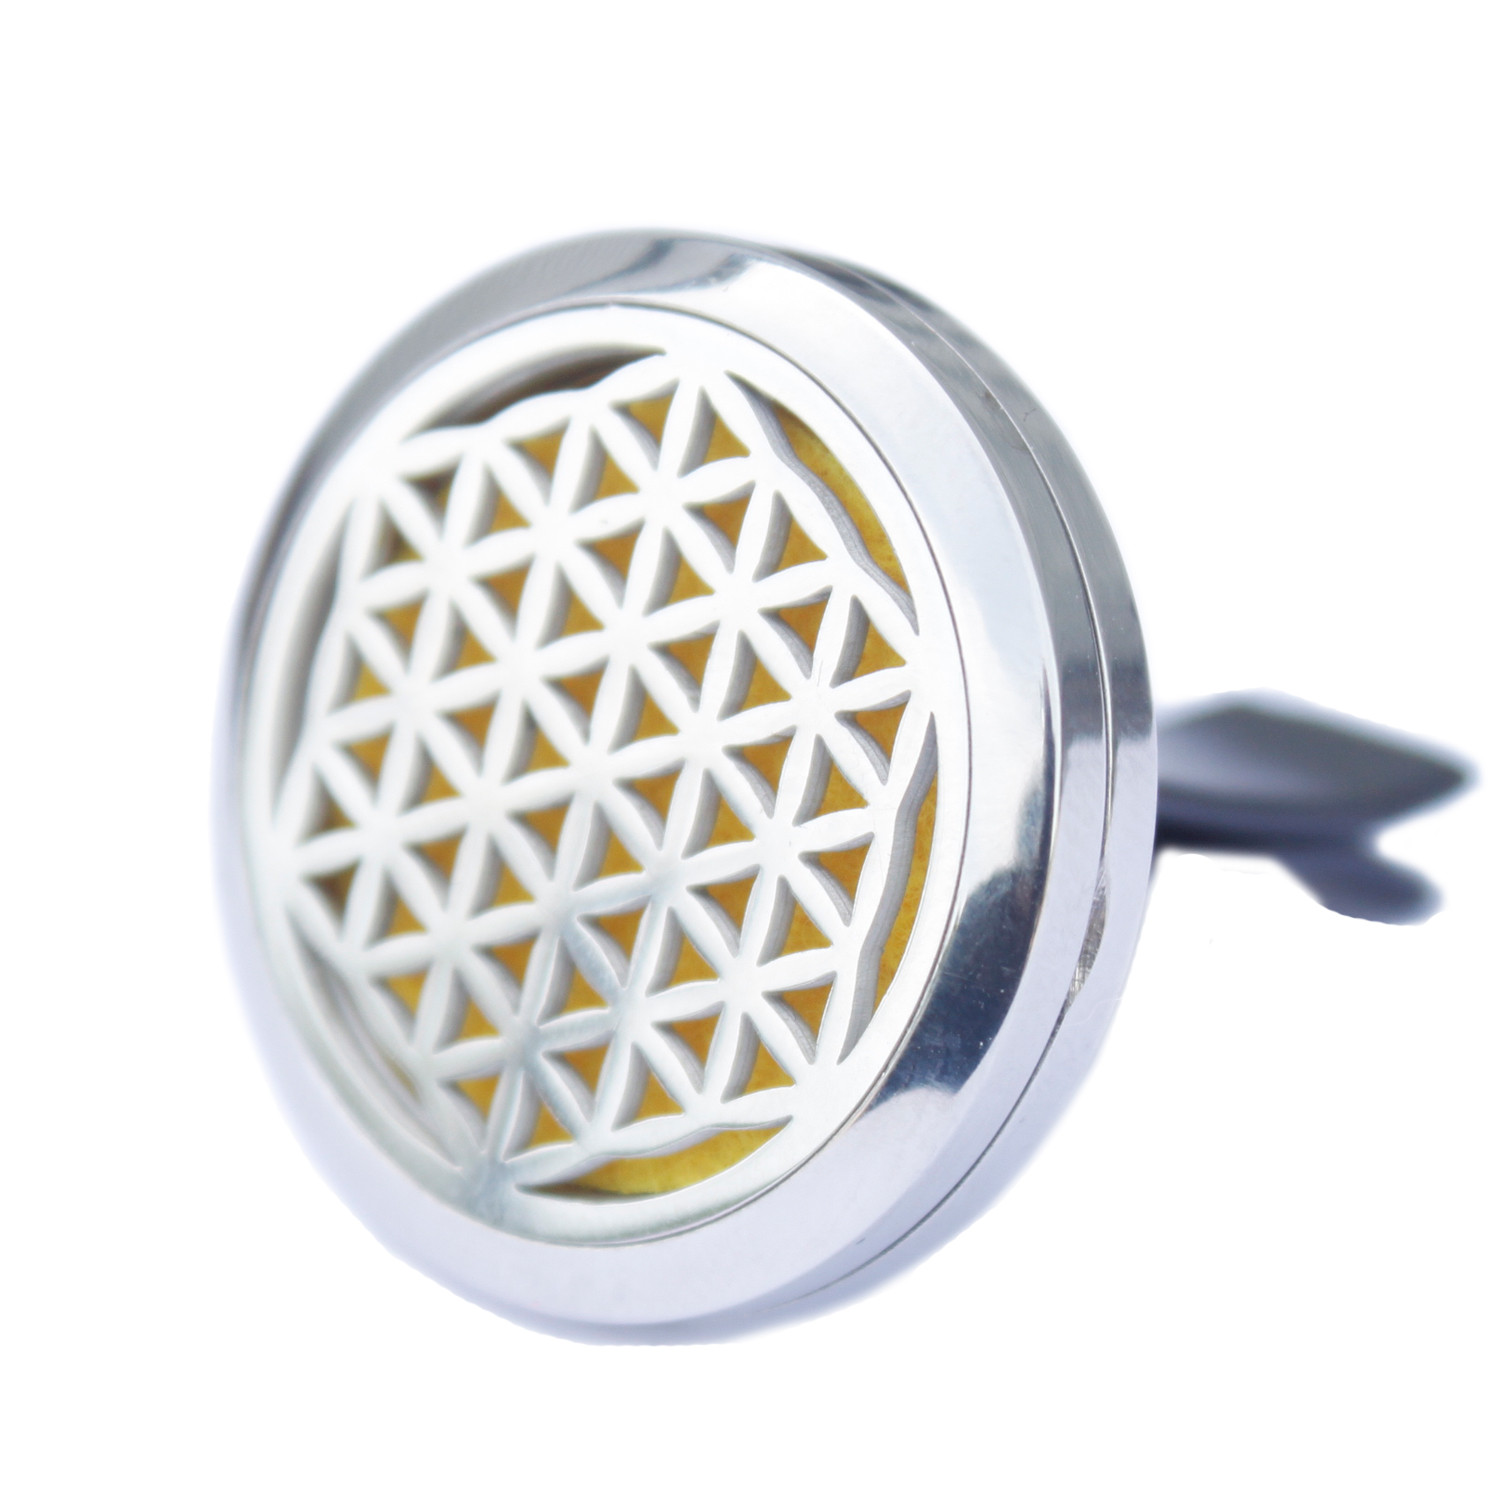 Flower of Life Car Diffuser Kit 30mm